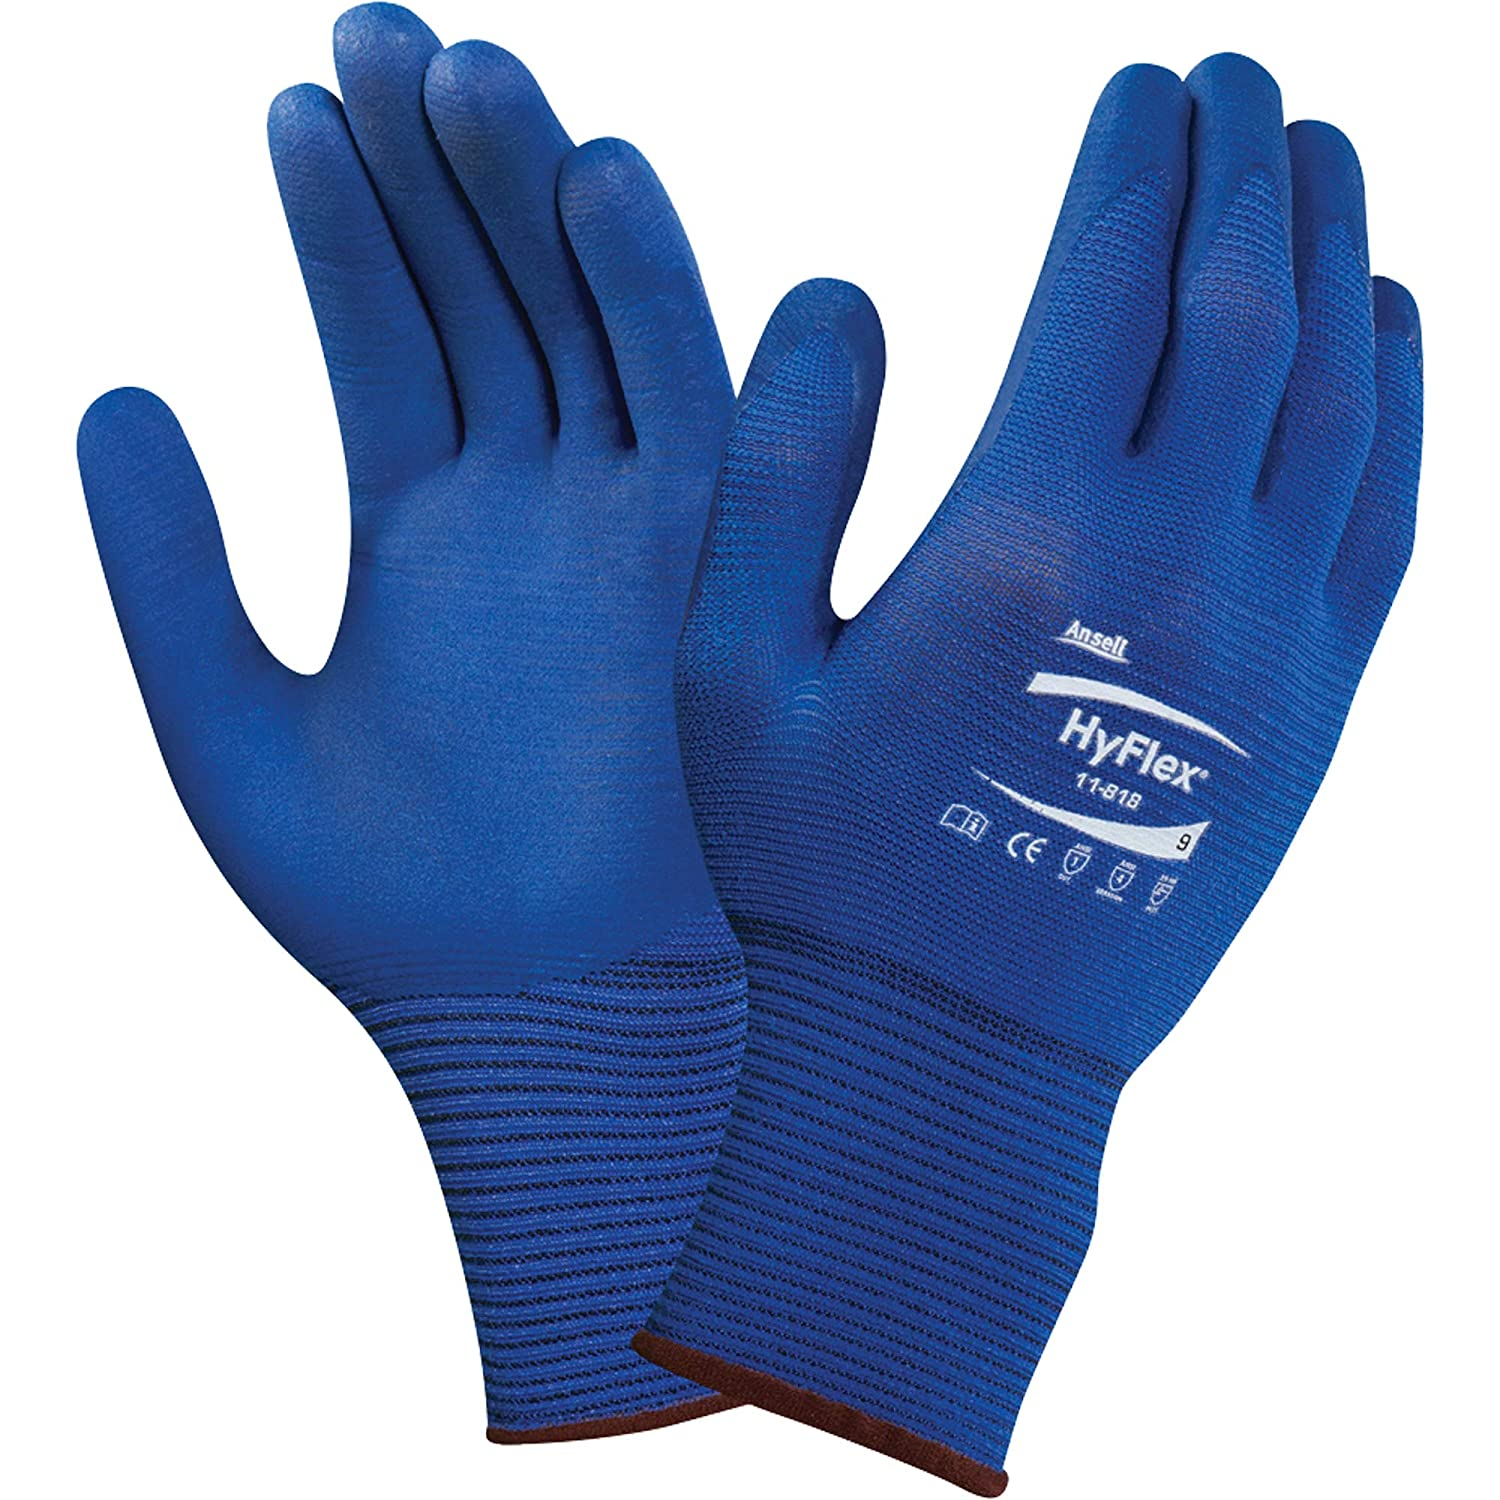 8//M ANSELL HYFLEX 11-800 NITRILE PALM GLOVES